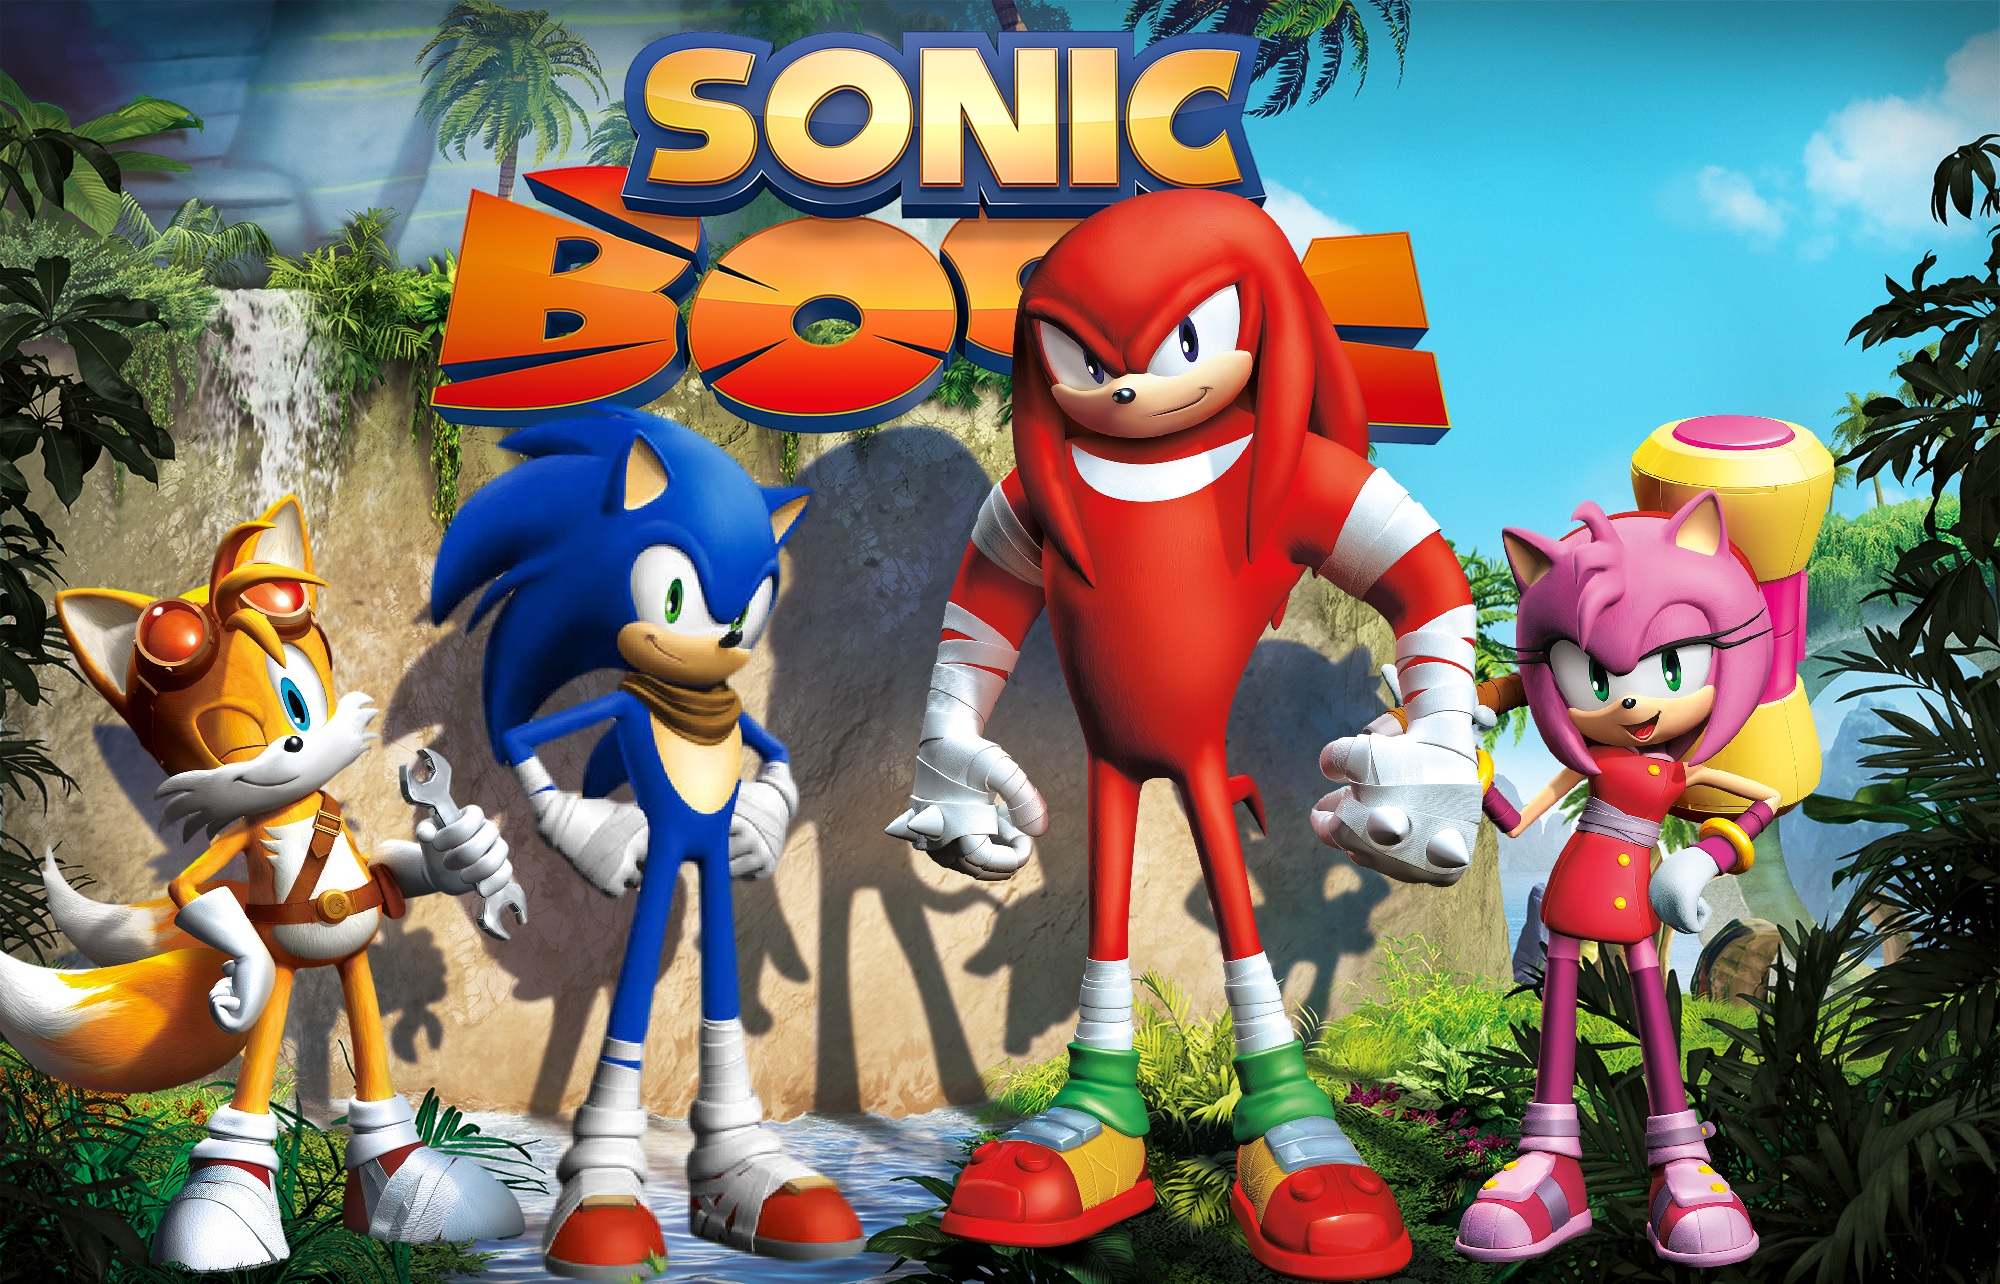 Sonic Boom Characters (remake) By Knuxy7789 On DeviantArt